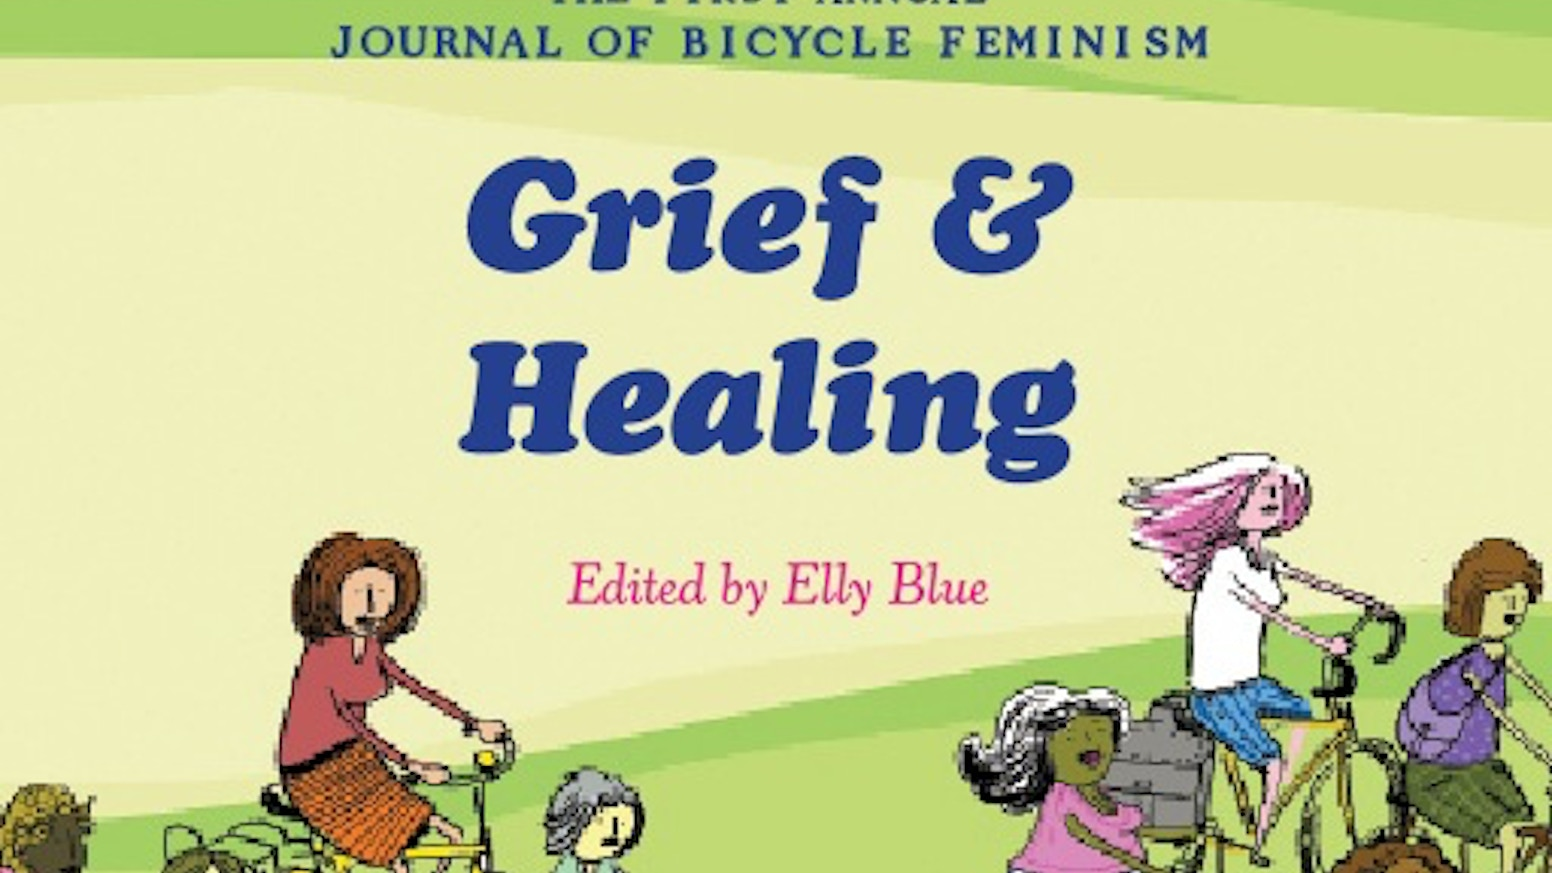 Cycletherapy is about grief, loss, healing, joy... and bikes. The book is available now from Microcosm.